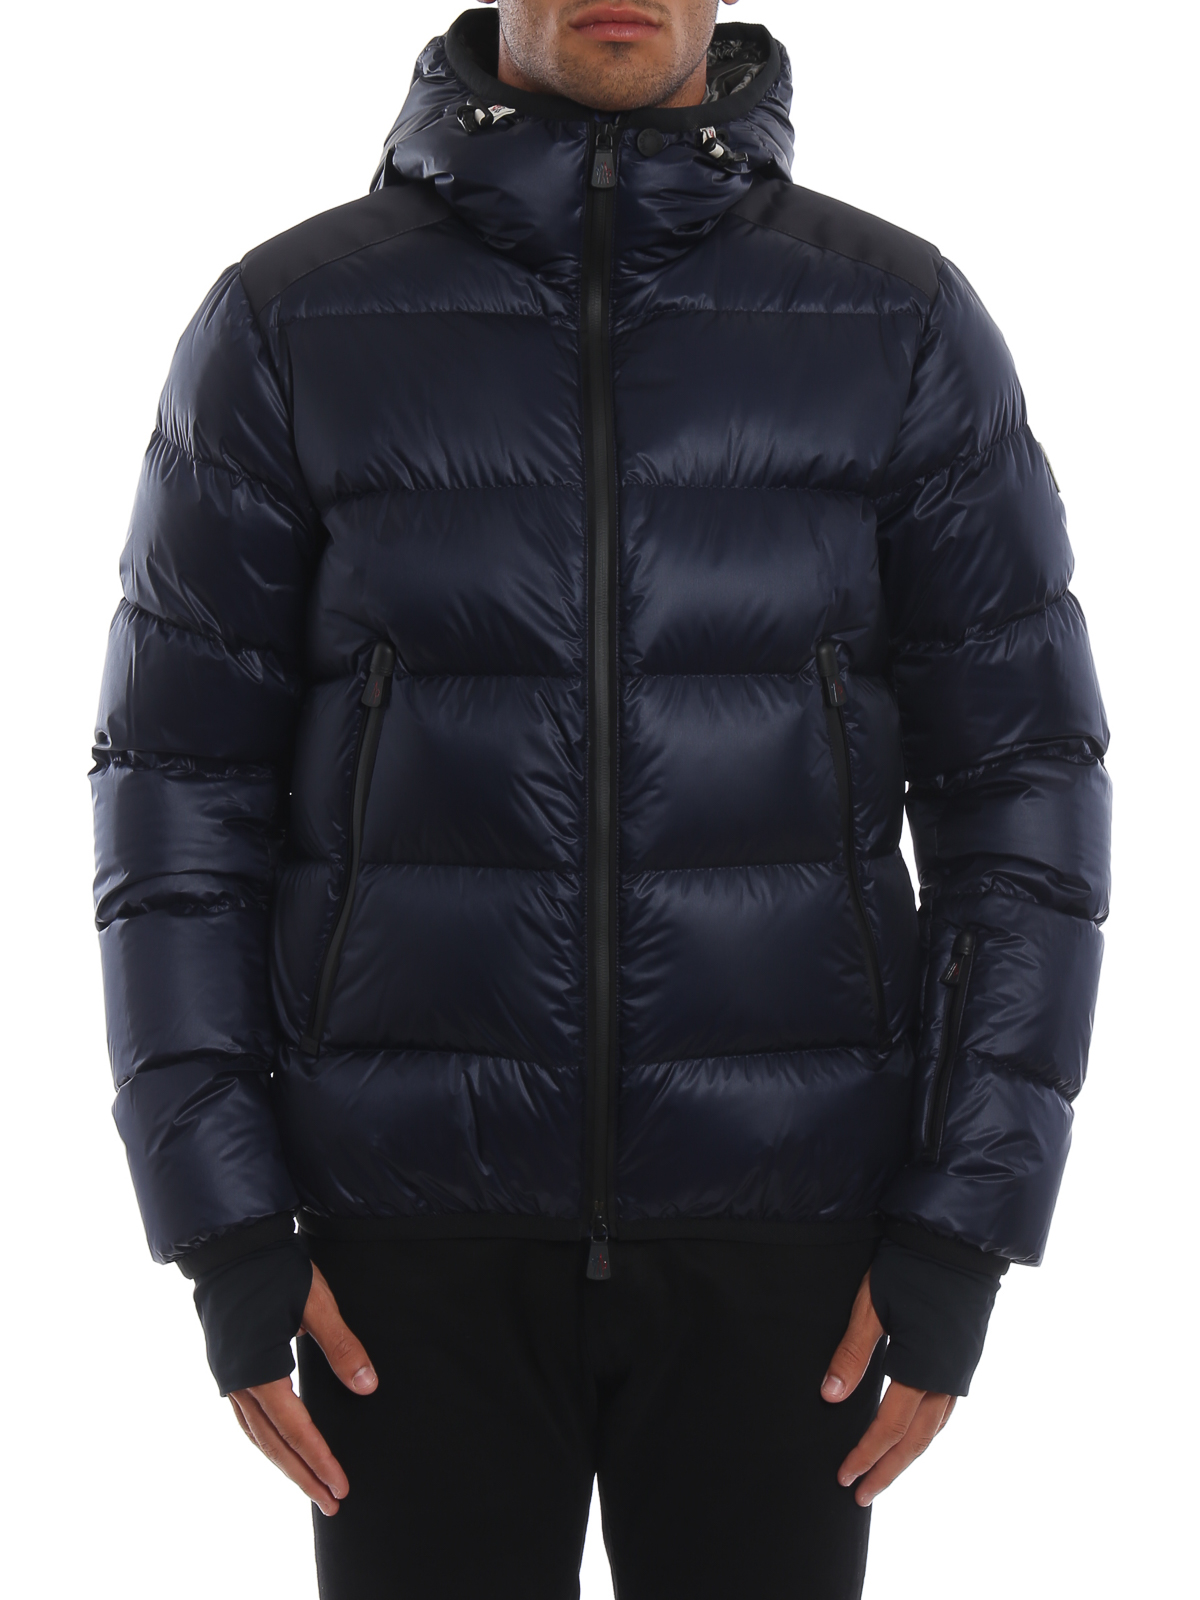 iKRIX MONCLER GRENOBLE: padded jackets - Interthux dark blue hooded puffer jacket